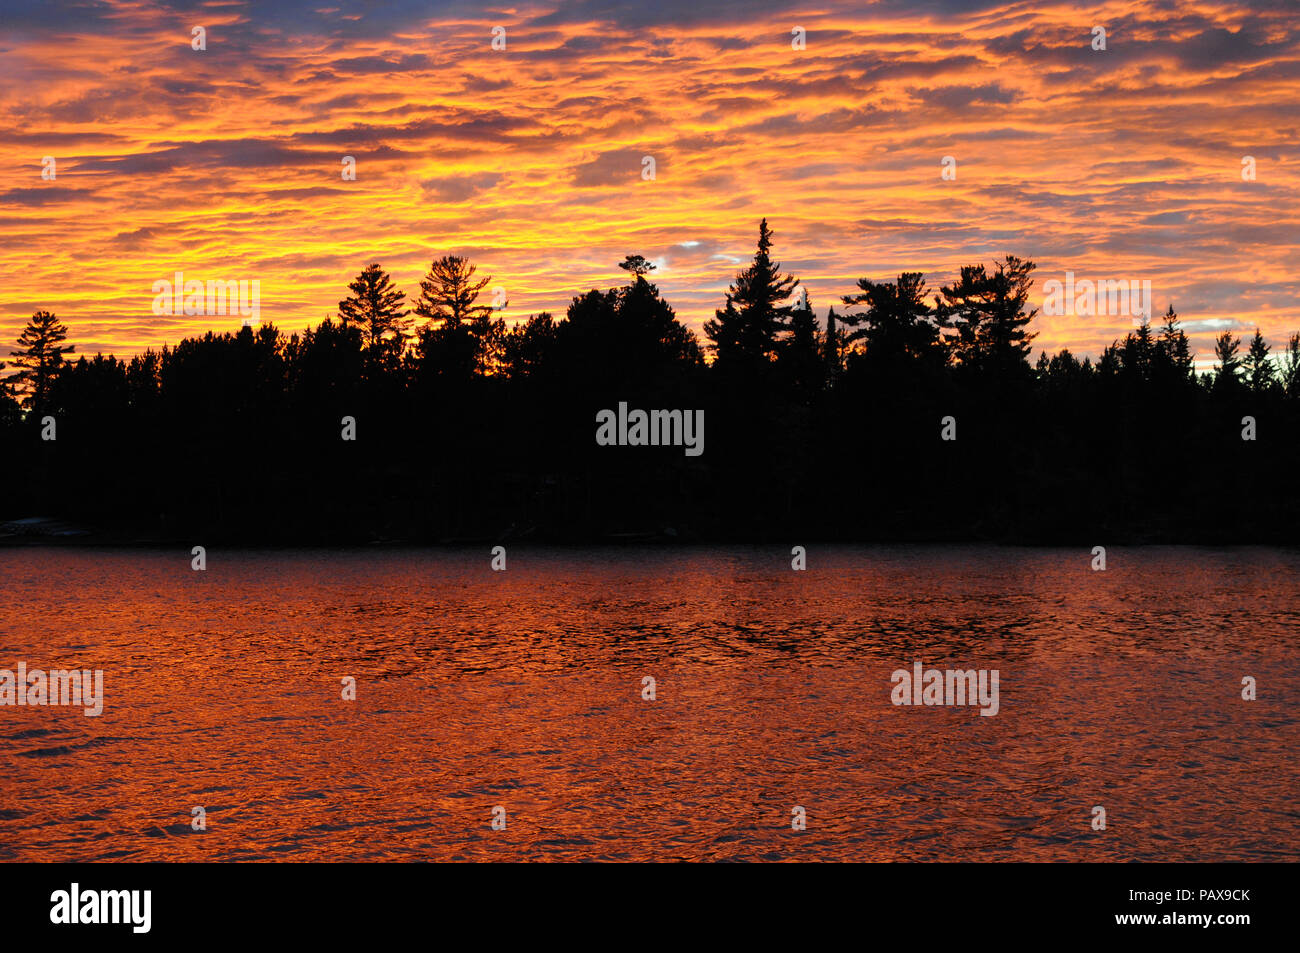 Sunset on Lake One in the Boundary Waters Canoe Area near Ely, Minnesota, USA - Stock Image